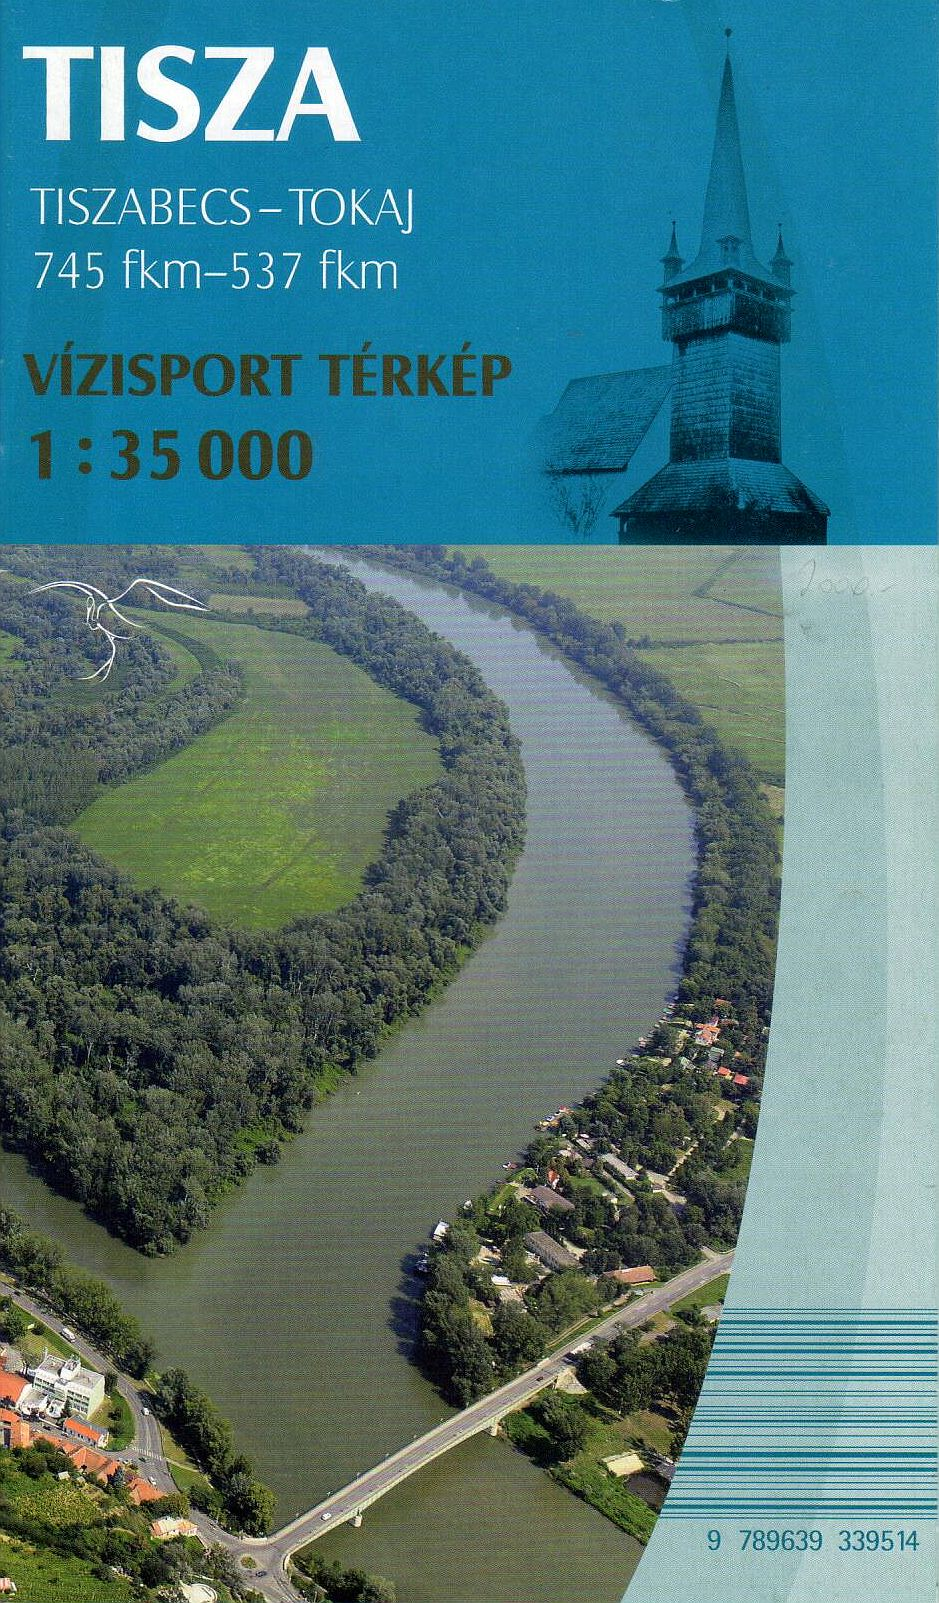 Deatailed kanoing and angling map of the Tisza river (745-537 km section) from Ukrainian boundary till Tokaj